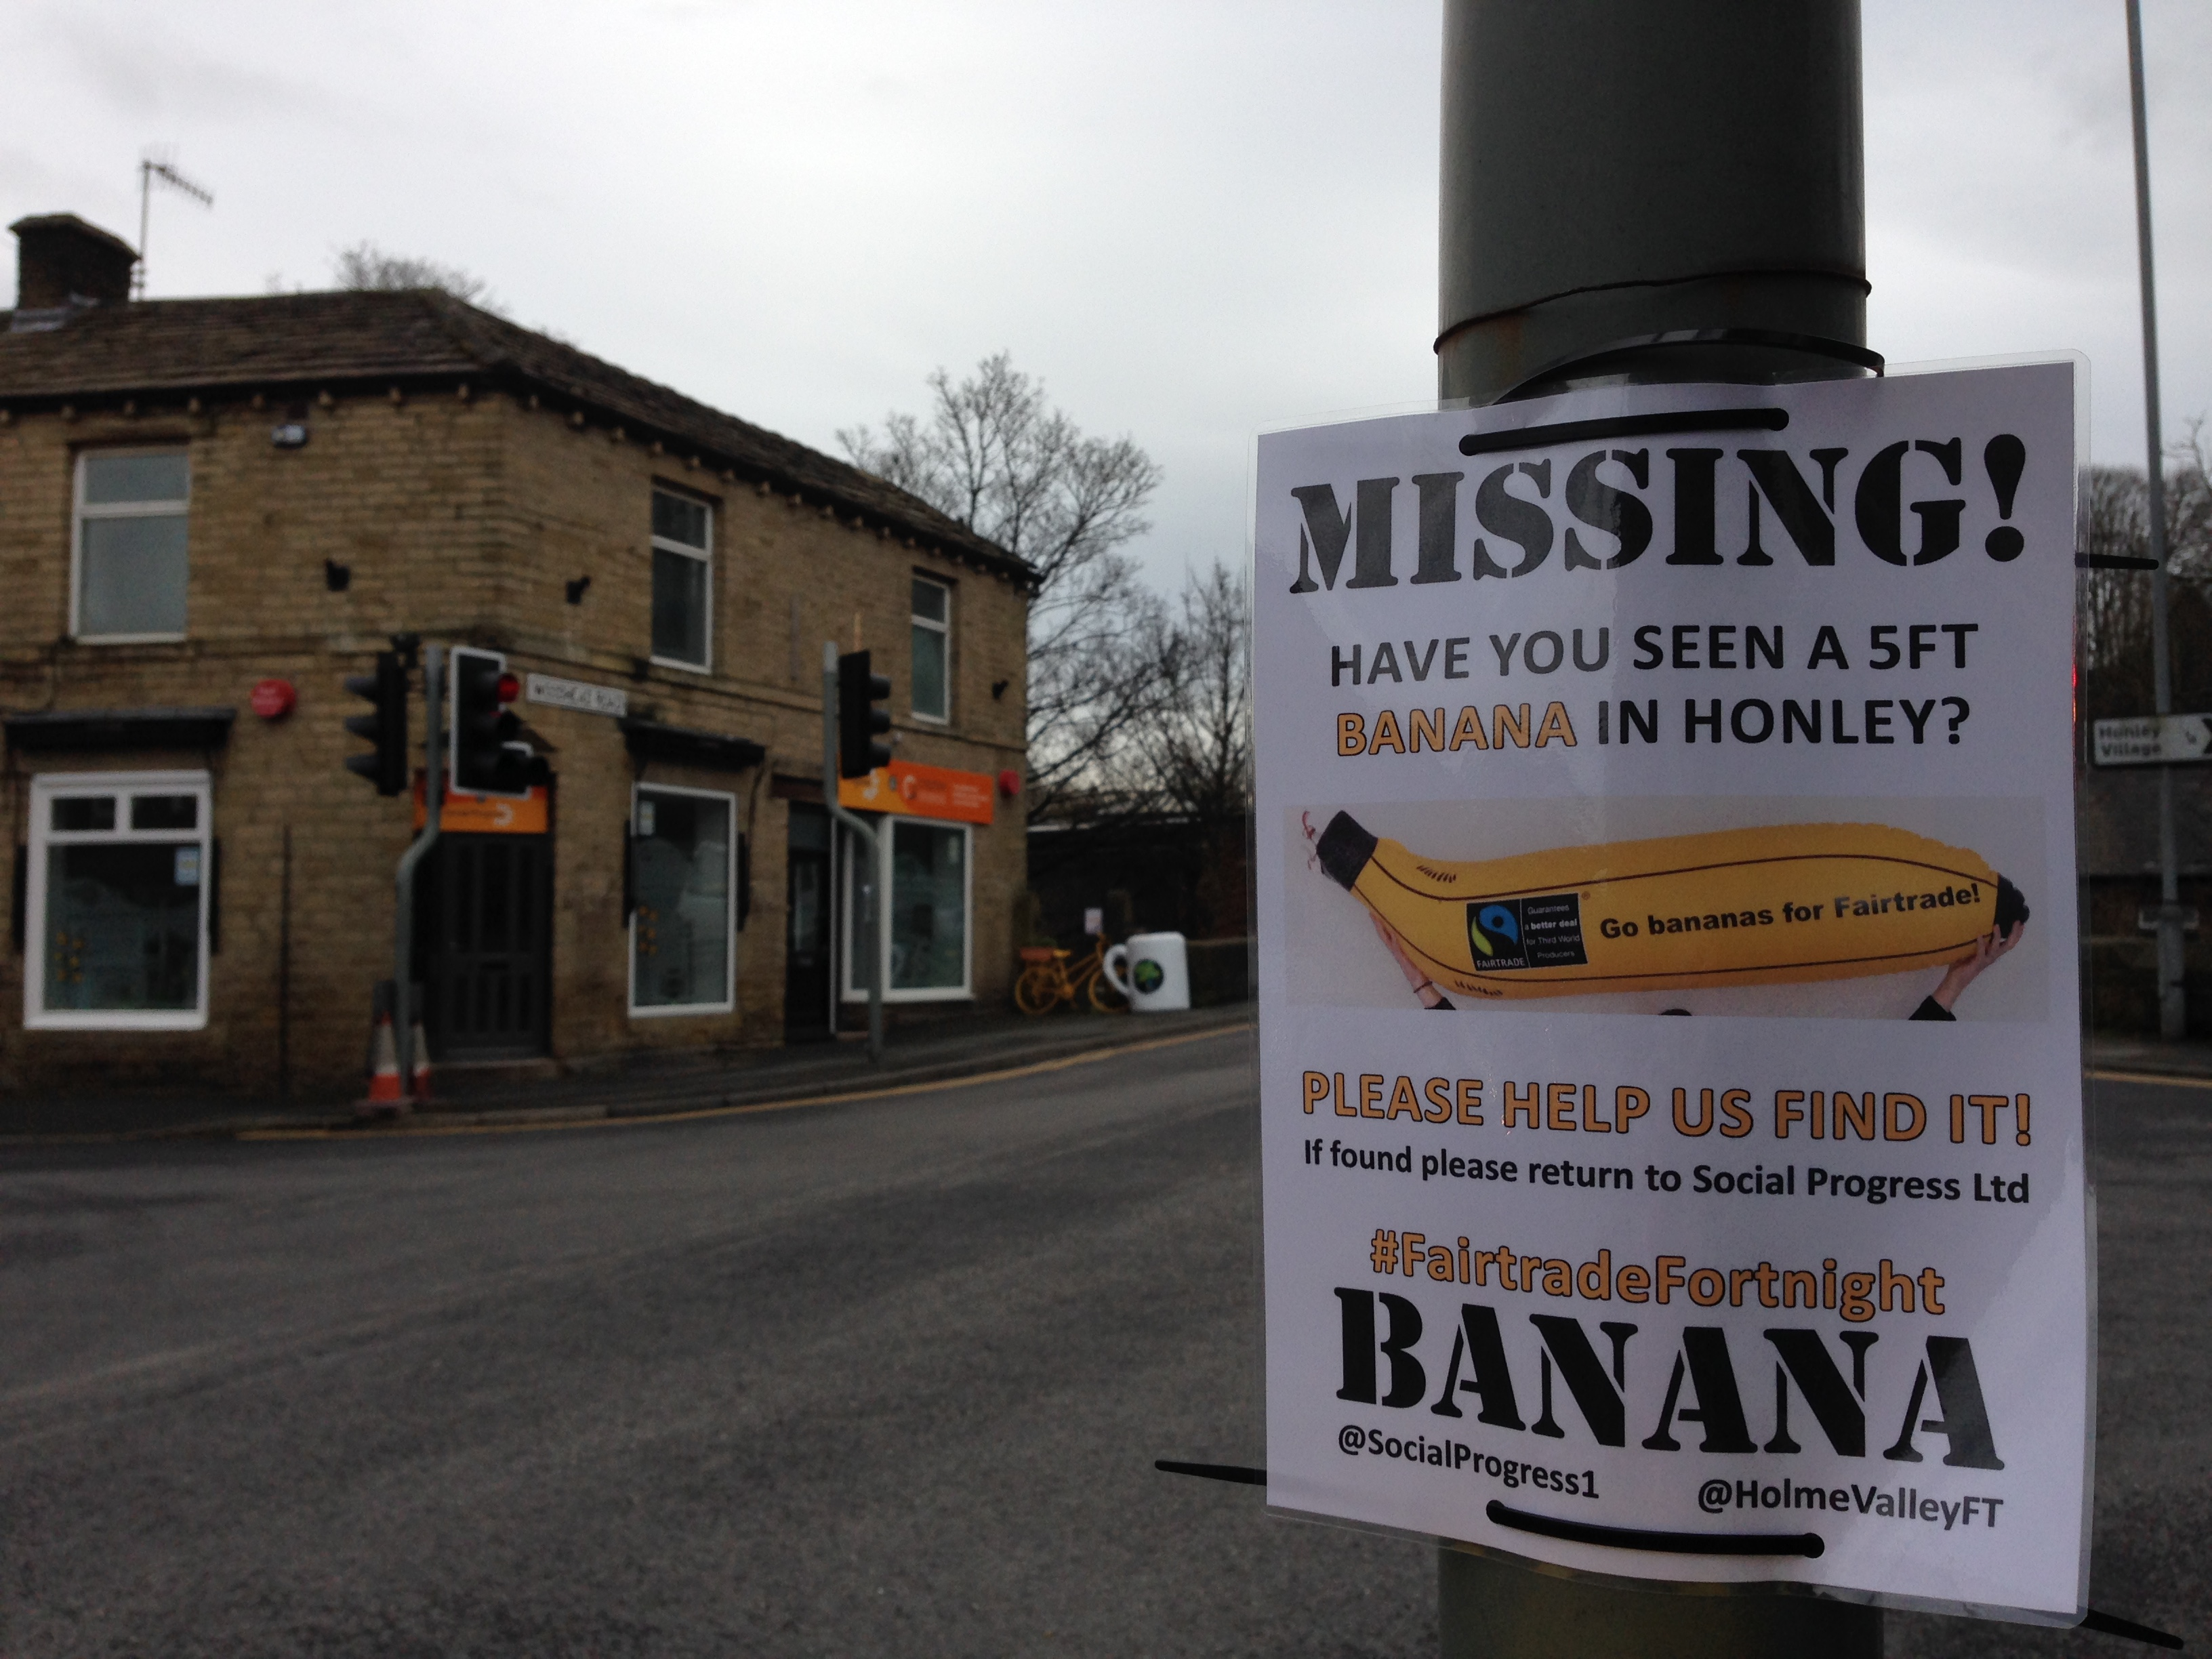 Fairtrade Fortnight 2015 - Missing Banana Campaign - Holme Valley Fairtrade